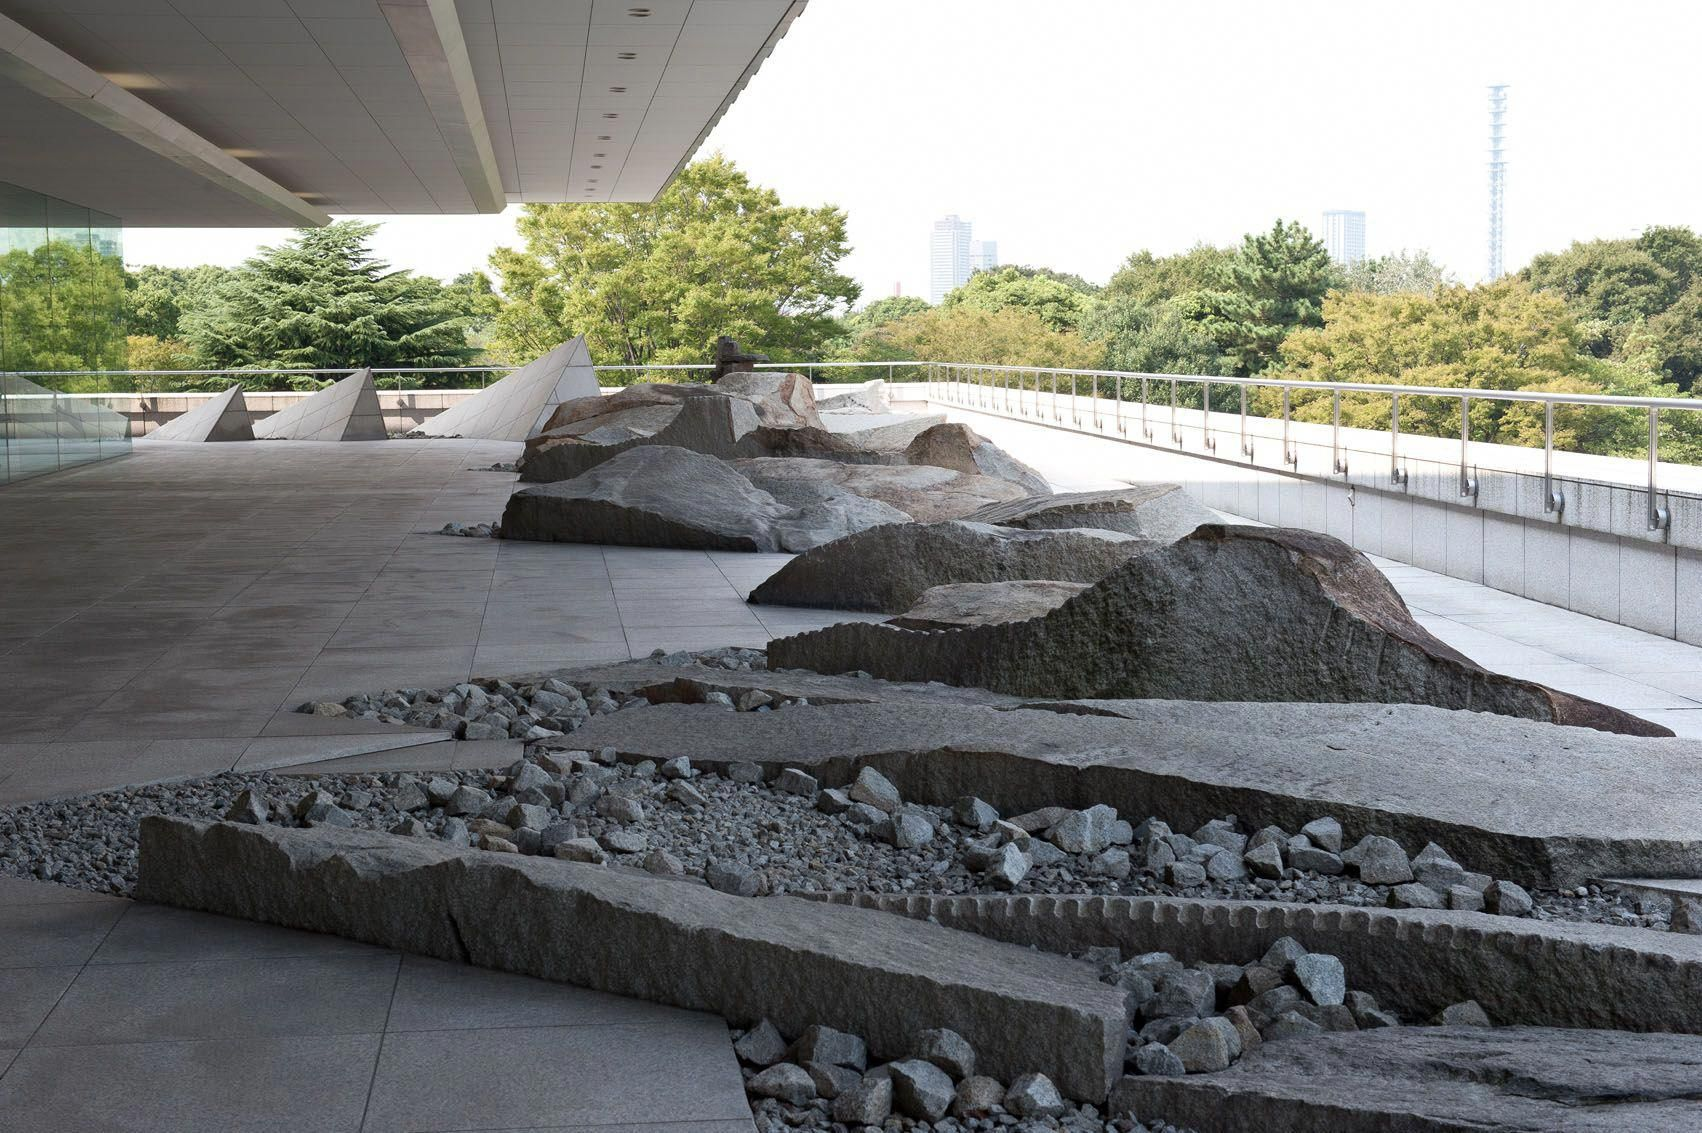 Canada S Hanging Garden Of Stone In Japan The Japan Times Modernlandscapedesign Modern Landscape Design Zen Garden Design Gardens Of Stone